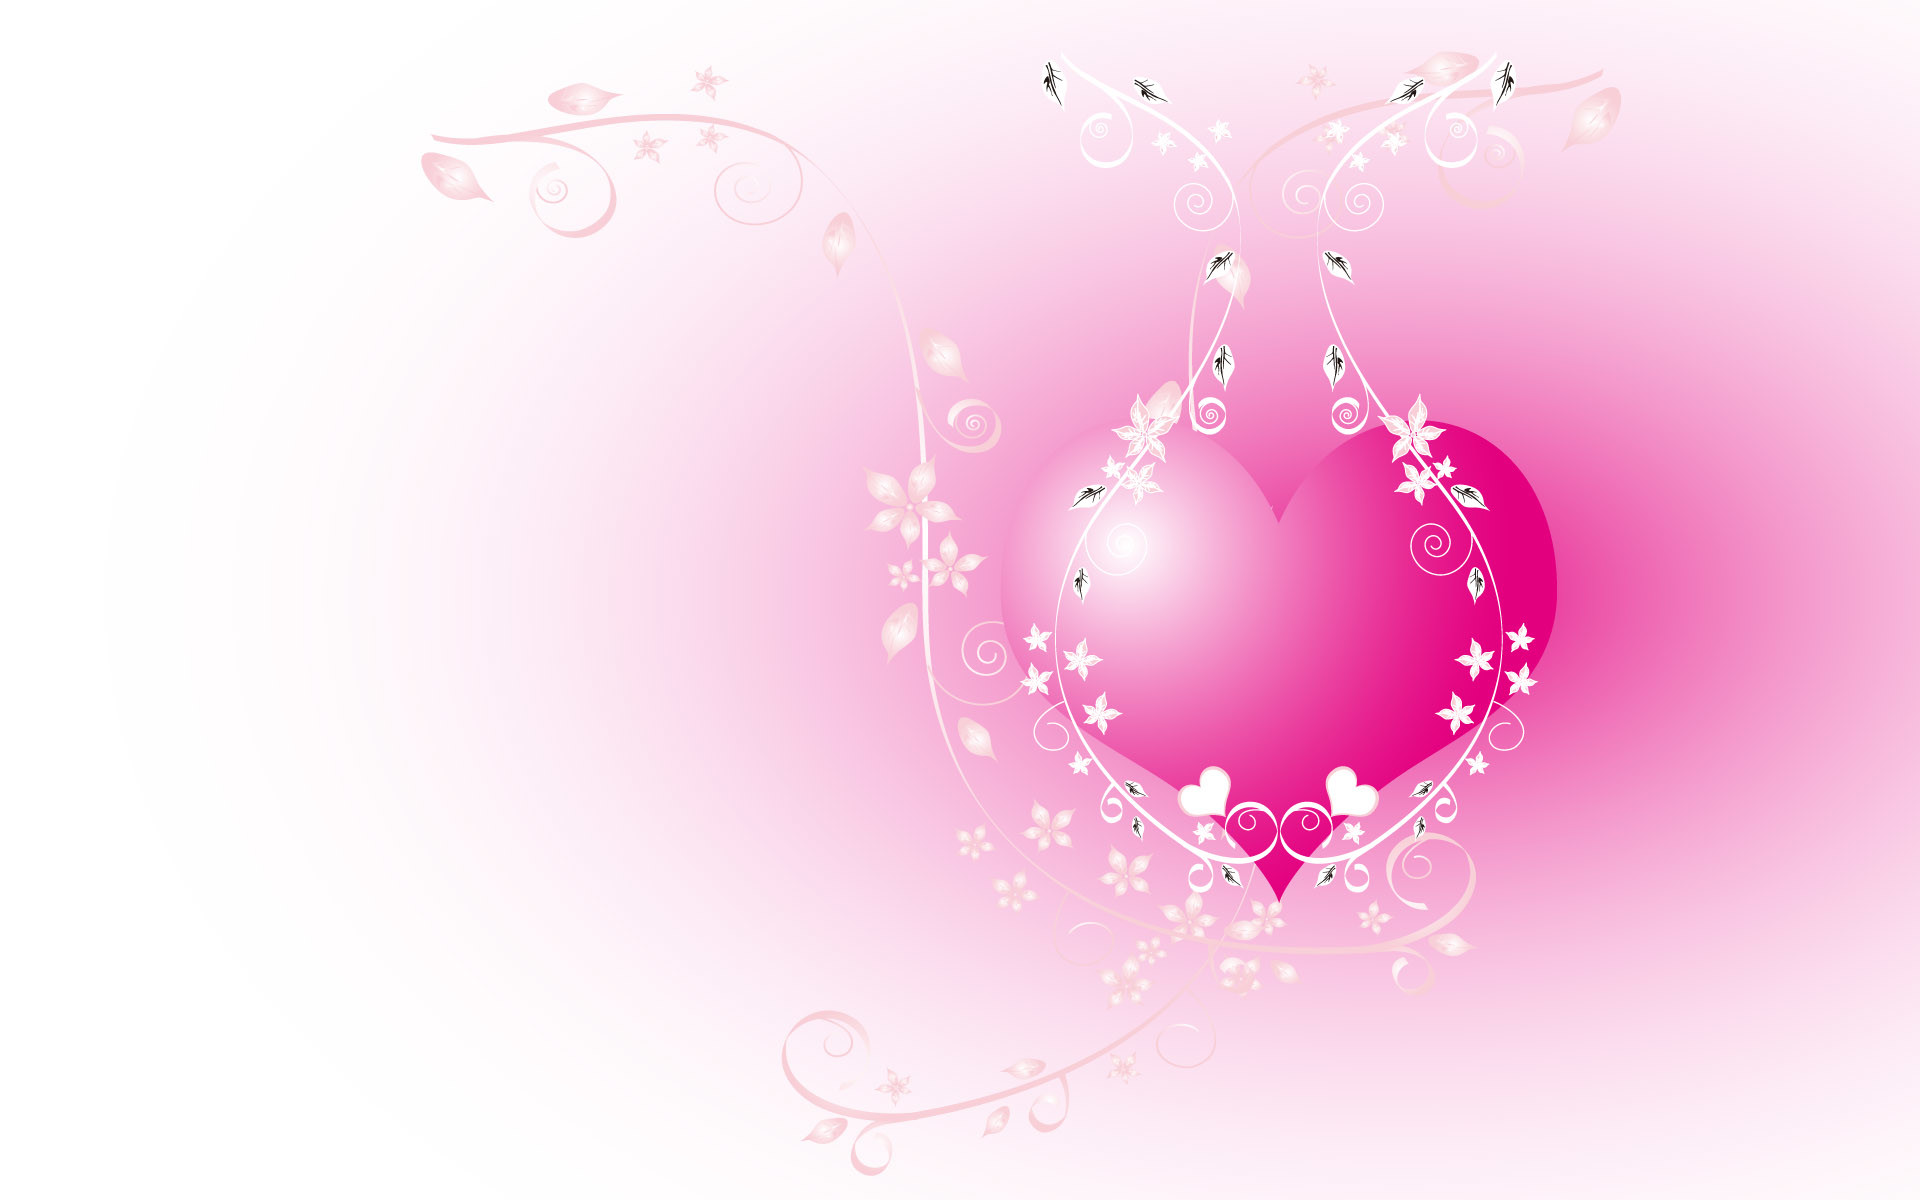 1920x1200 Download Hearts wallpaper, the pink heart image